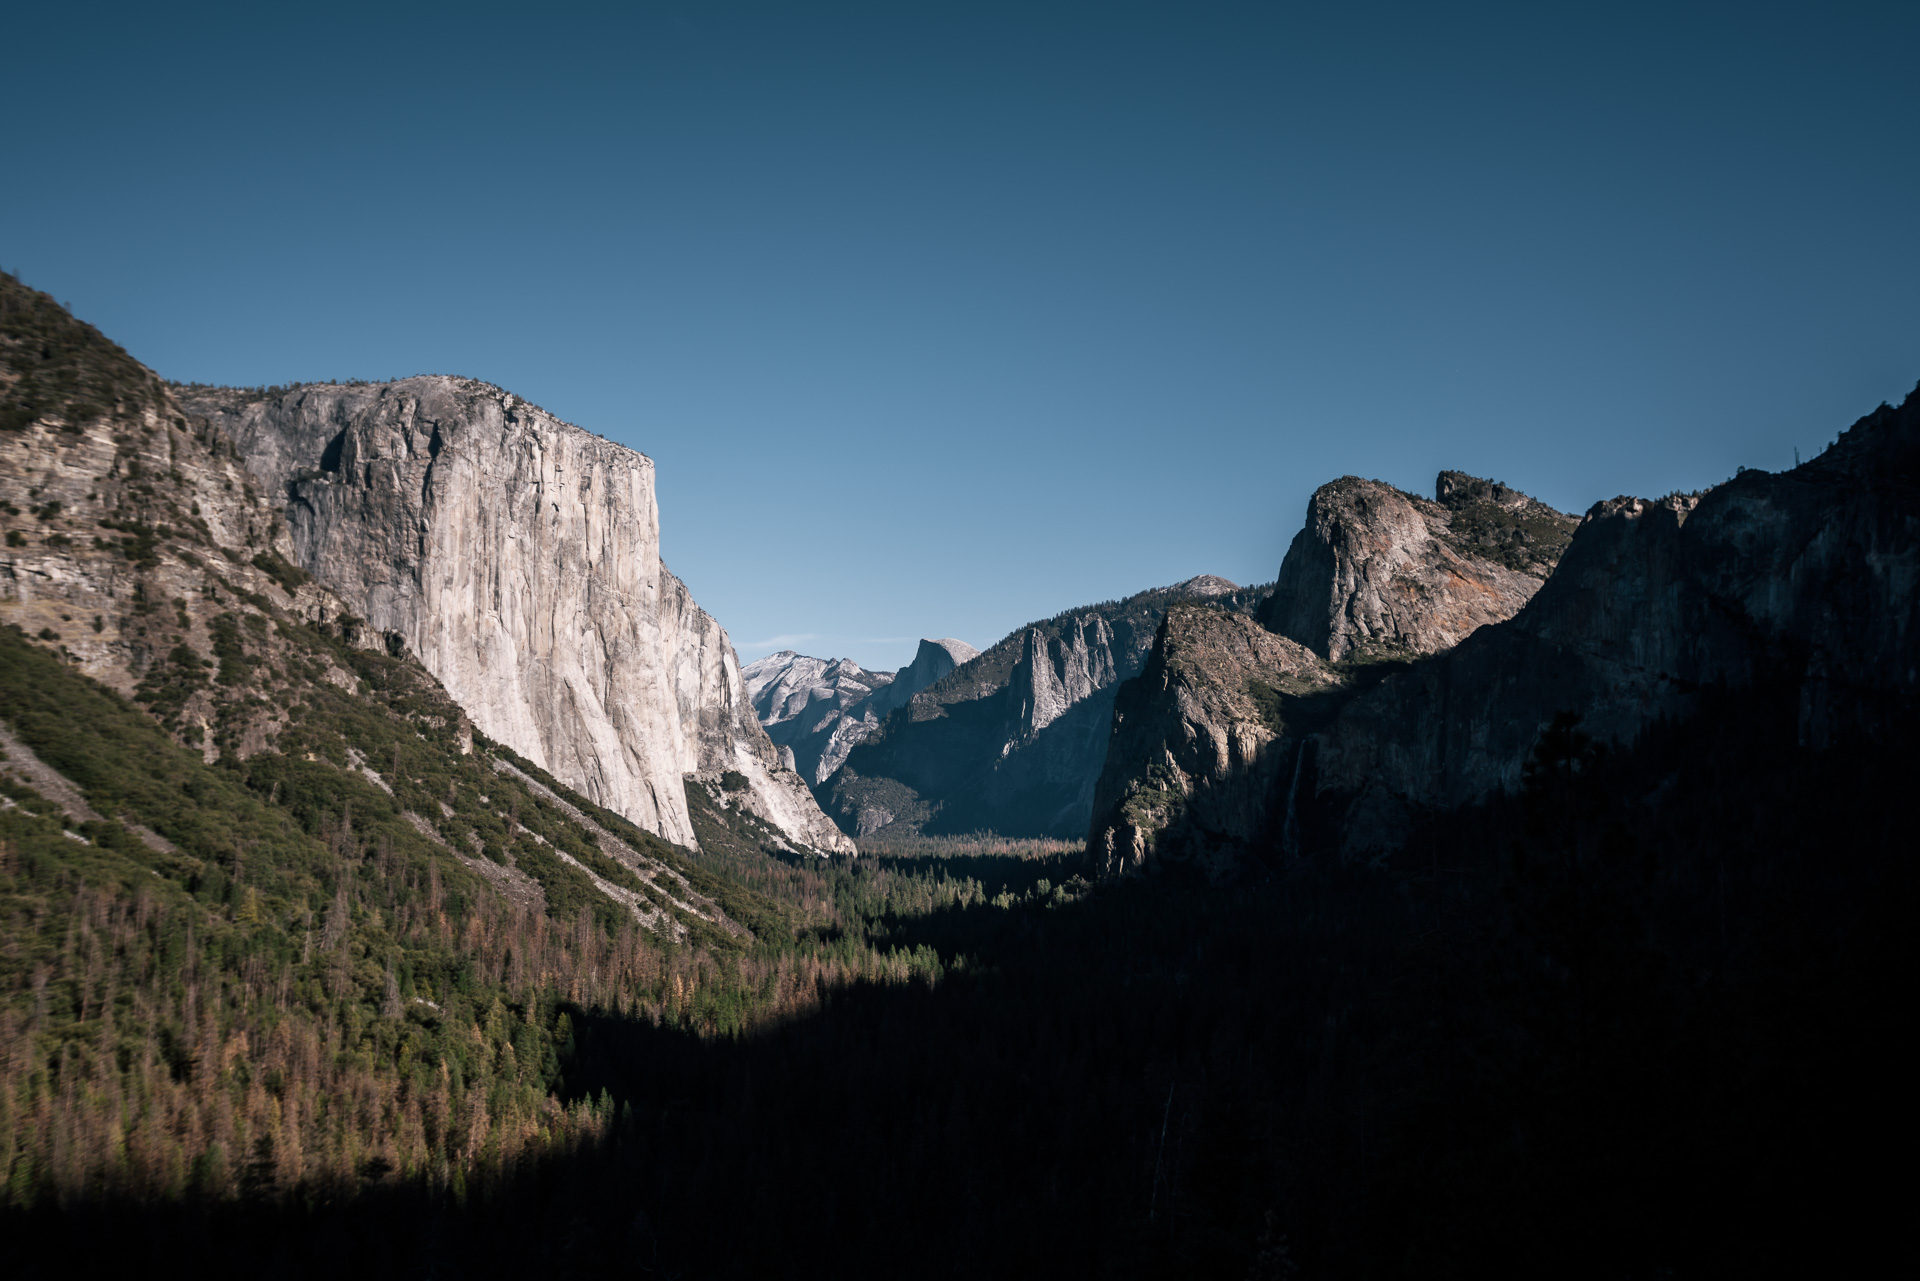 Tunnel View, Yosemite national park elopement photographer